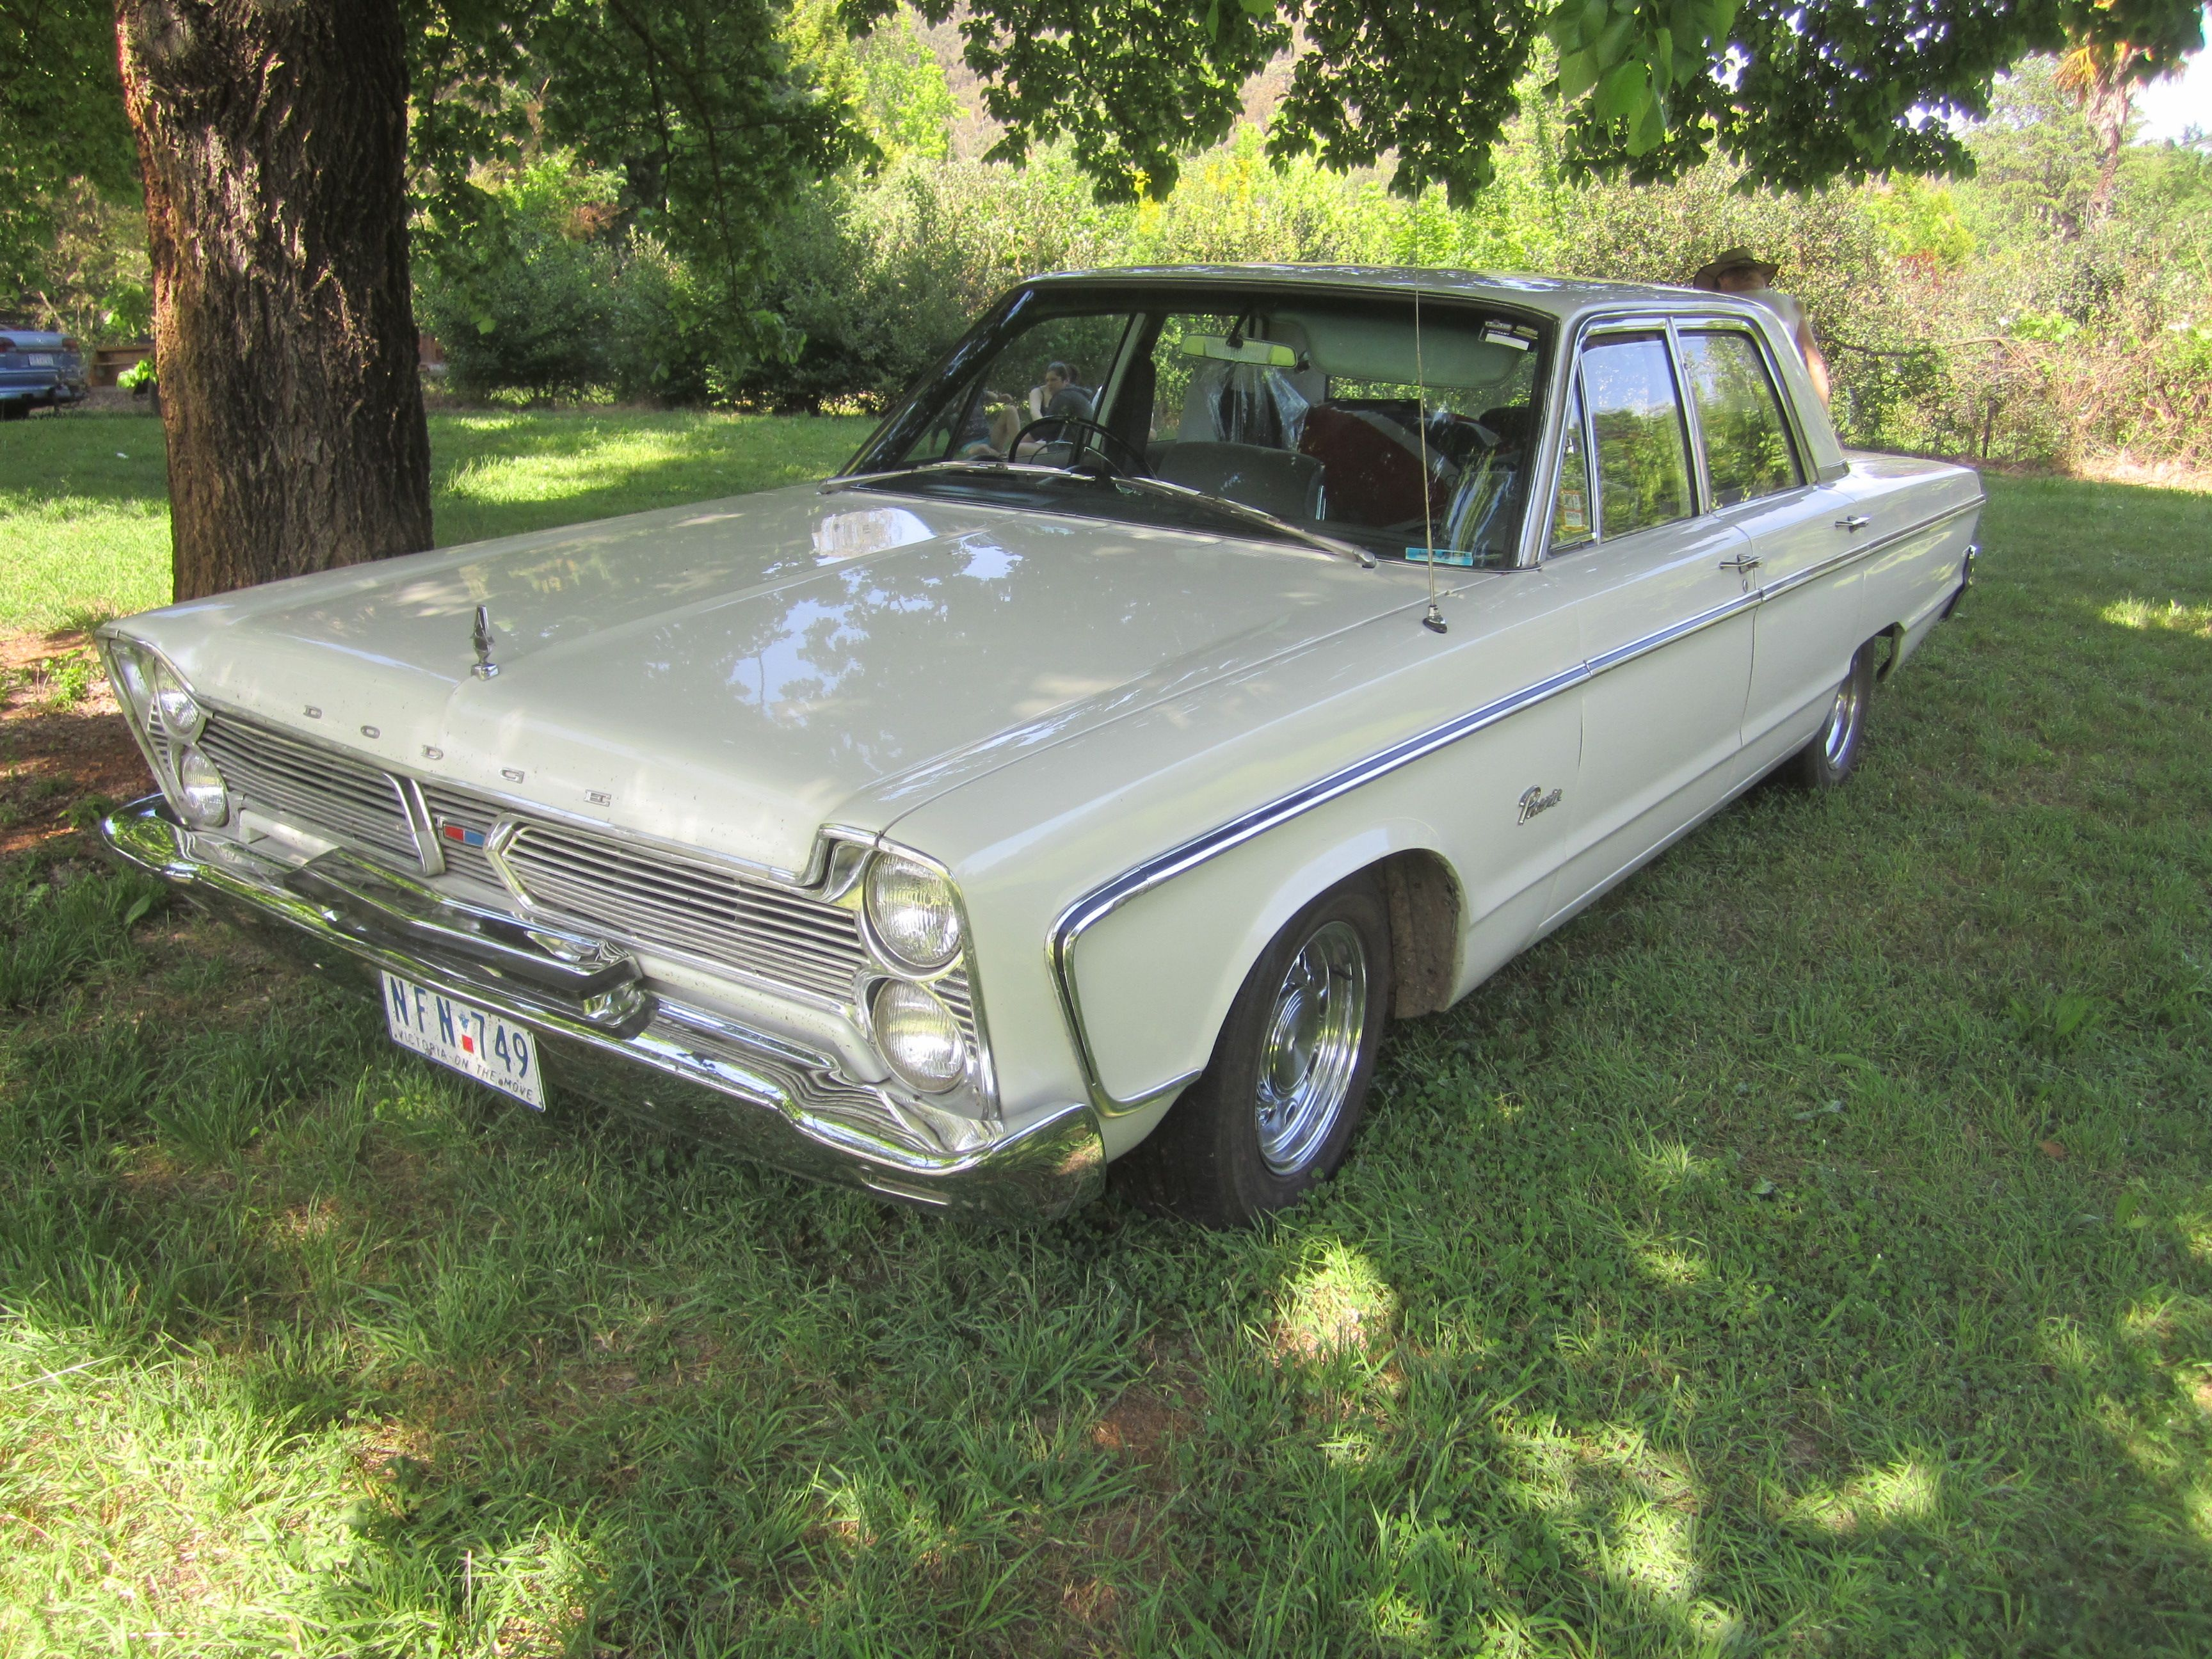 1961 dodge polara maintenance of old vehicles the material for new cogs casters gears pads could be cast polyamide which i cast polyamide can pr